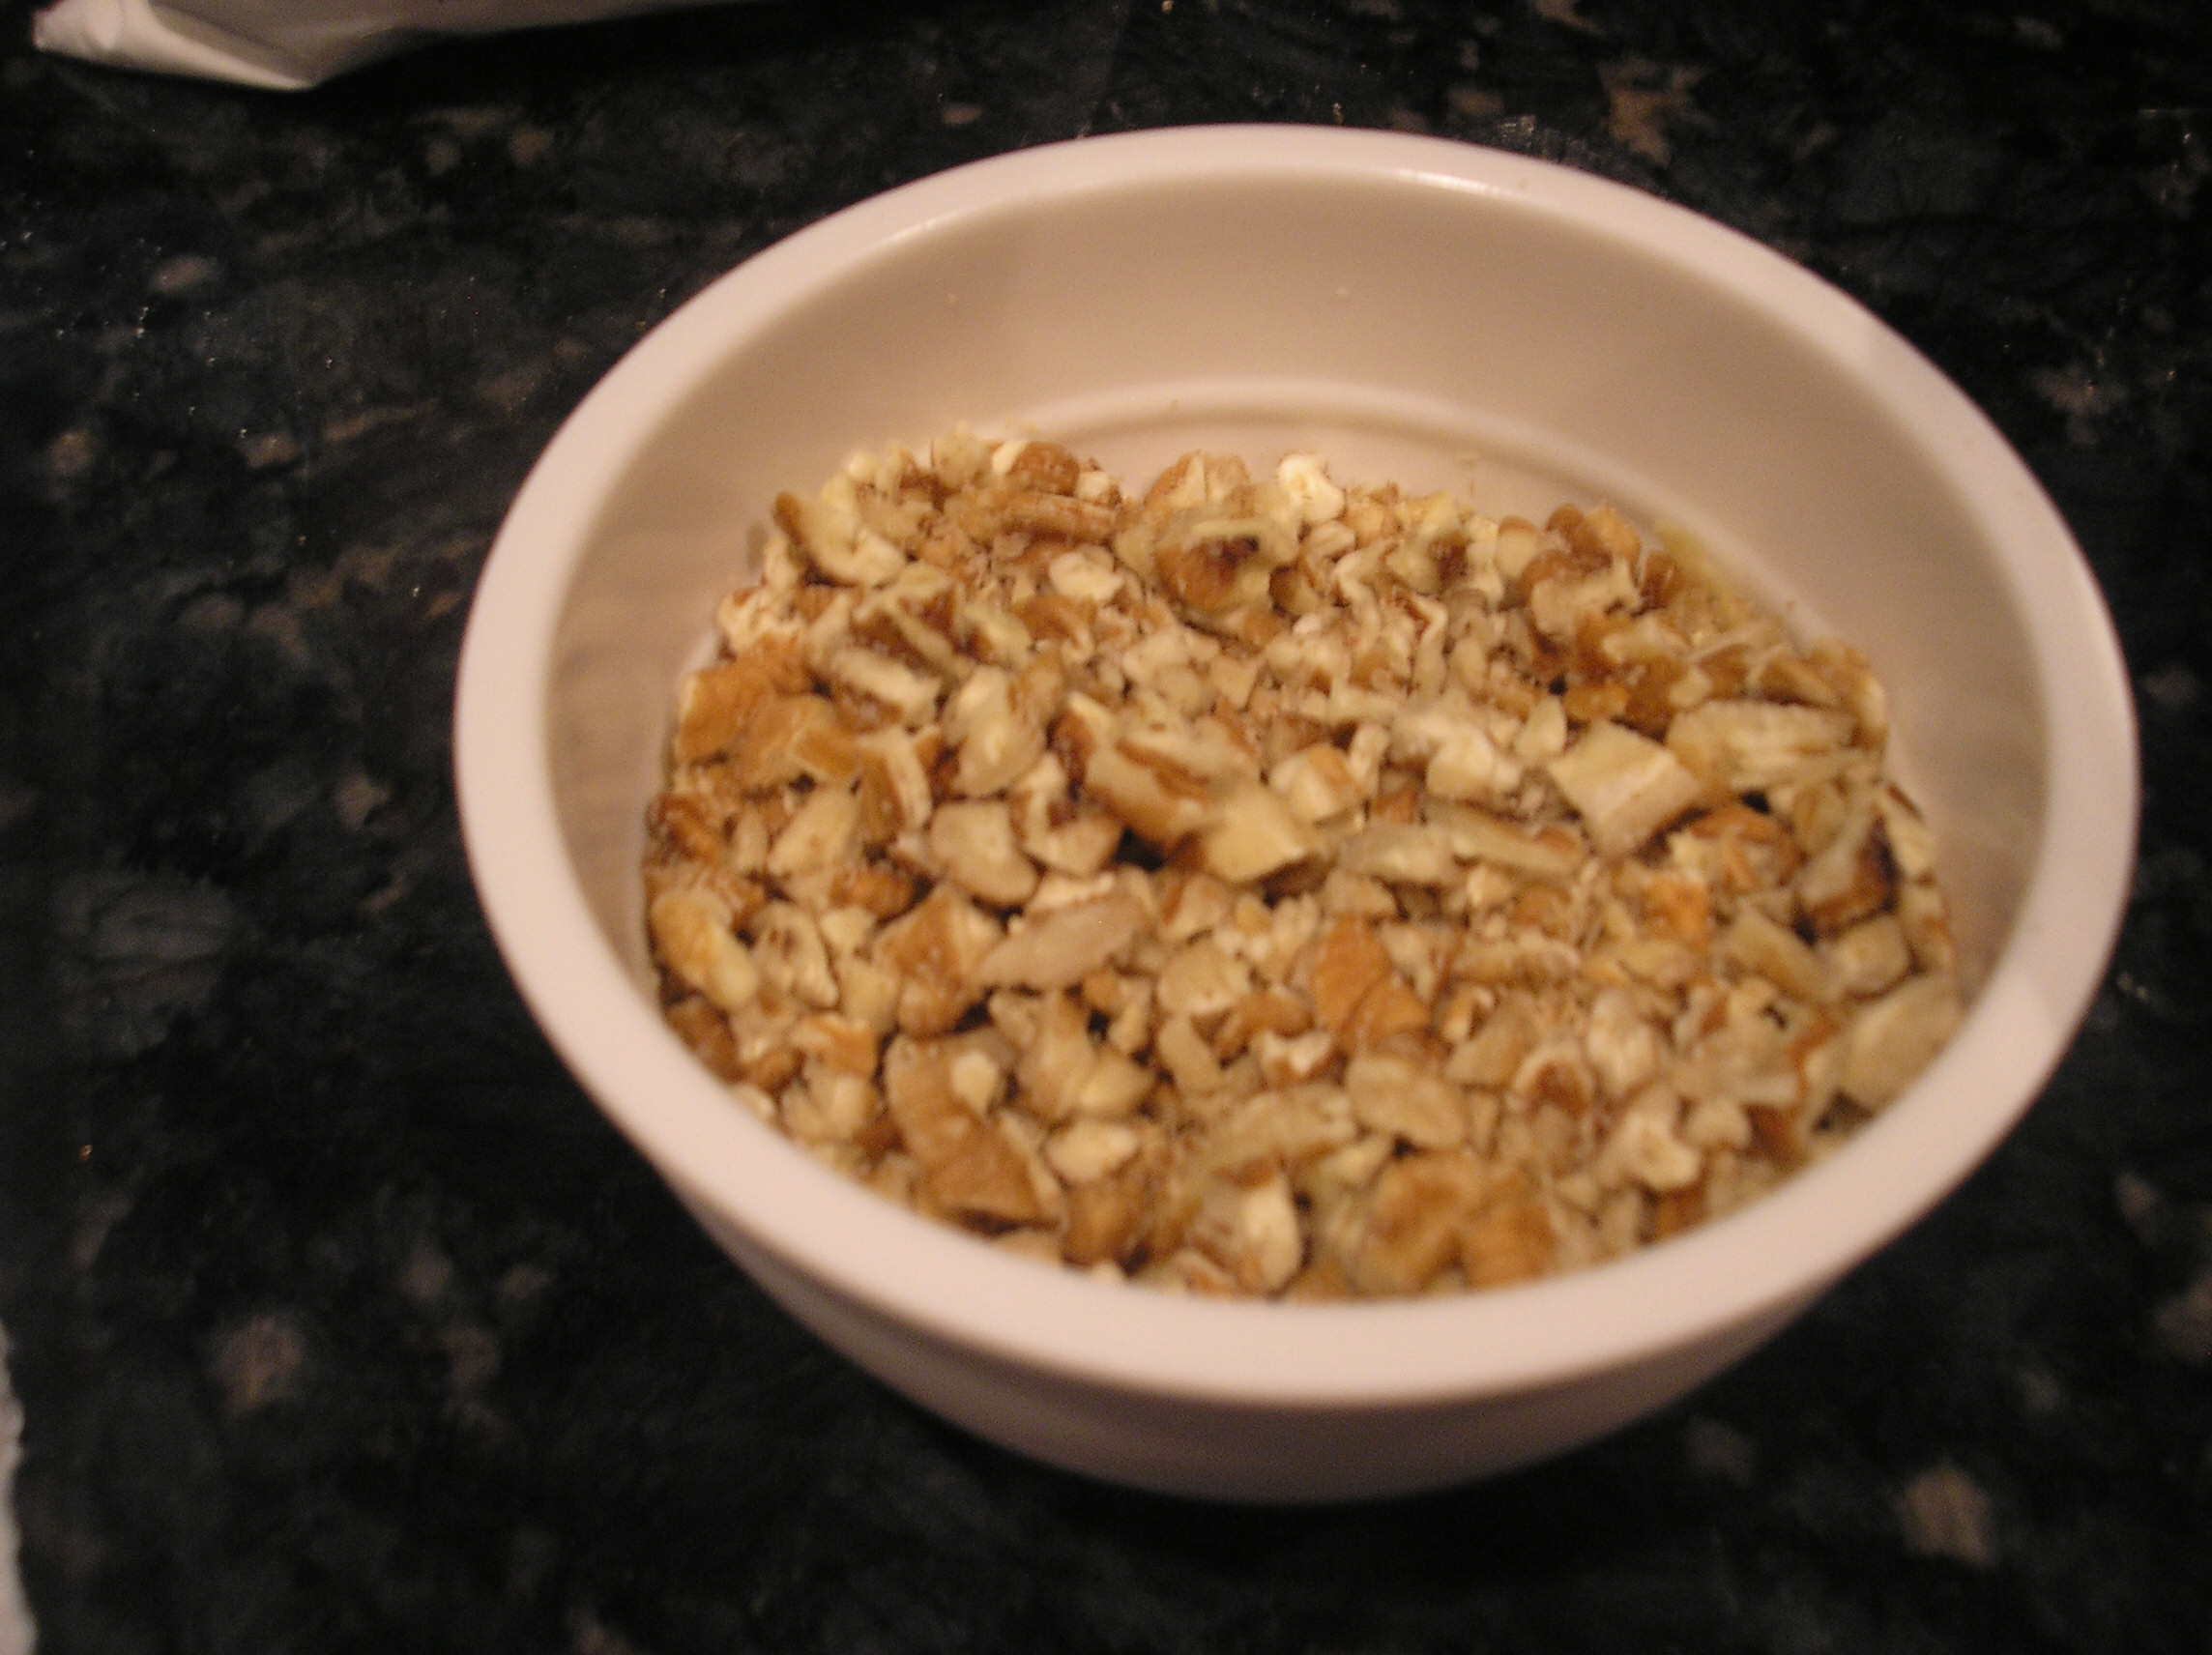 Add 1/2 to 1 cup of chopped pecans